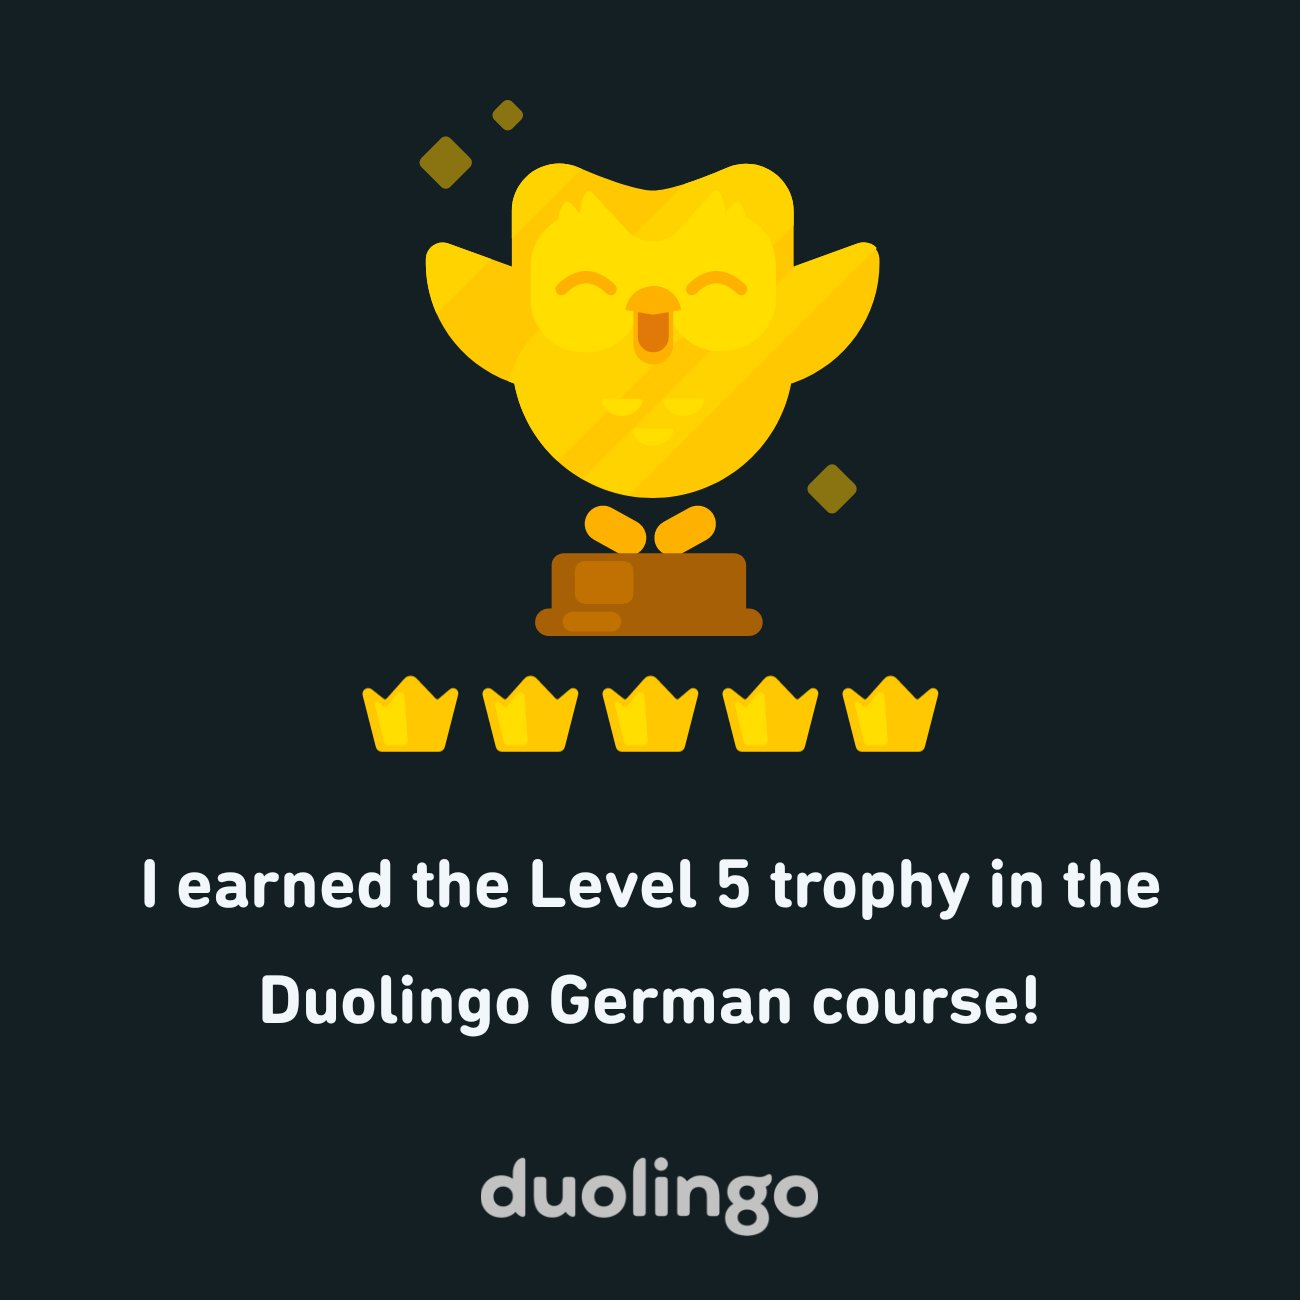 I earned the Level 5 trophy in the Duolingo German course!